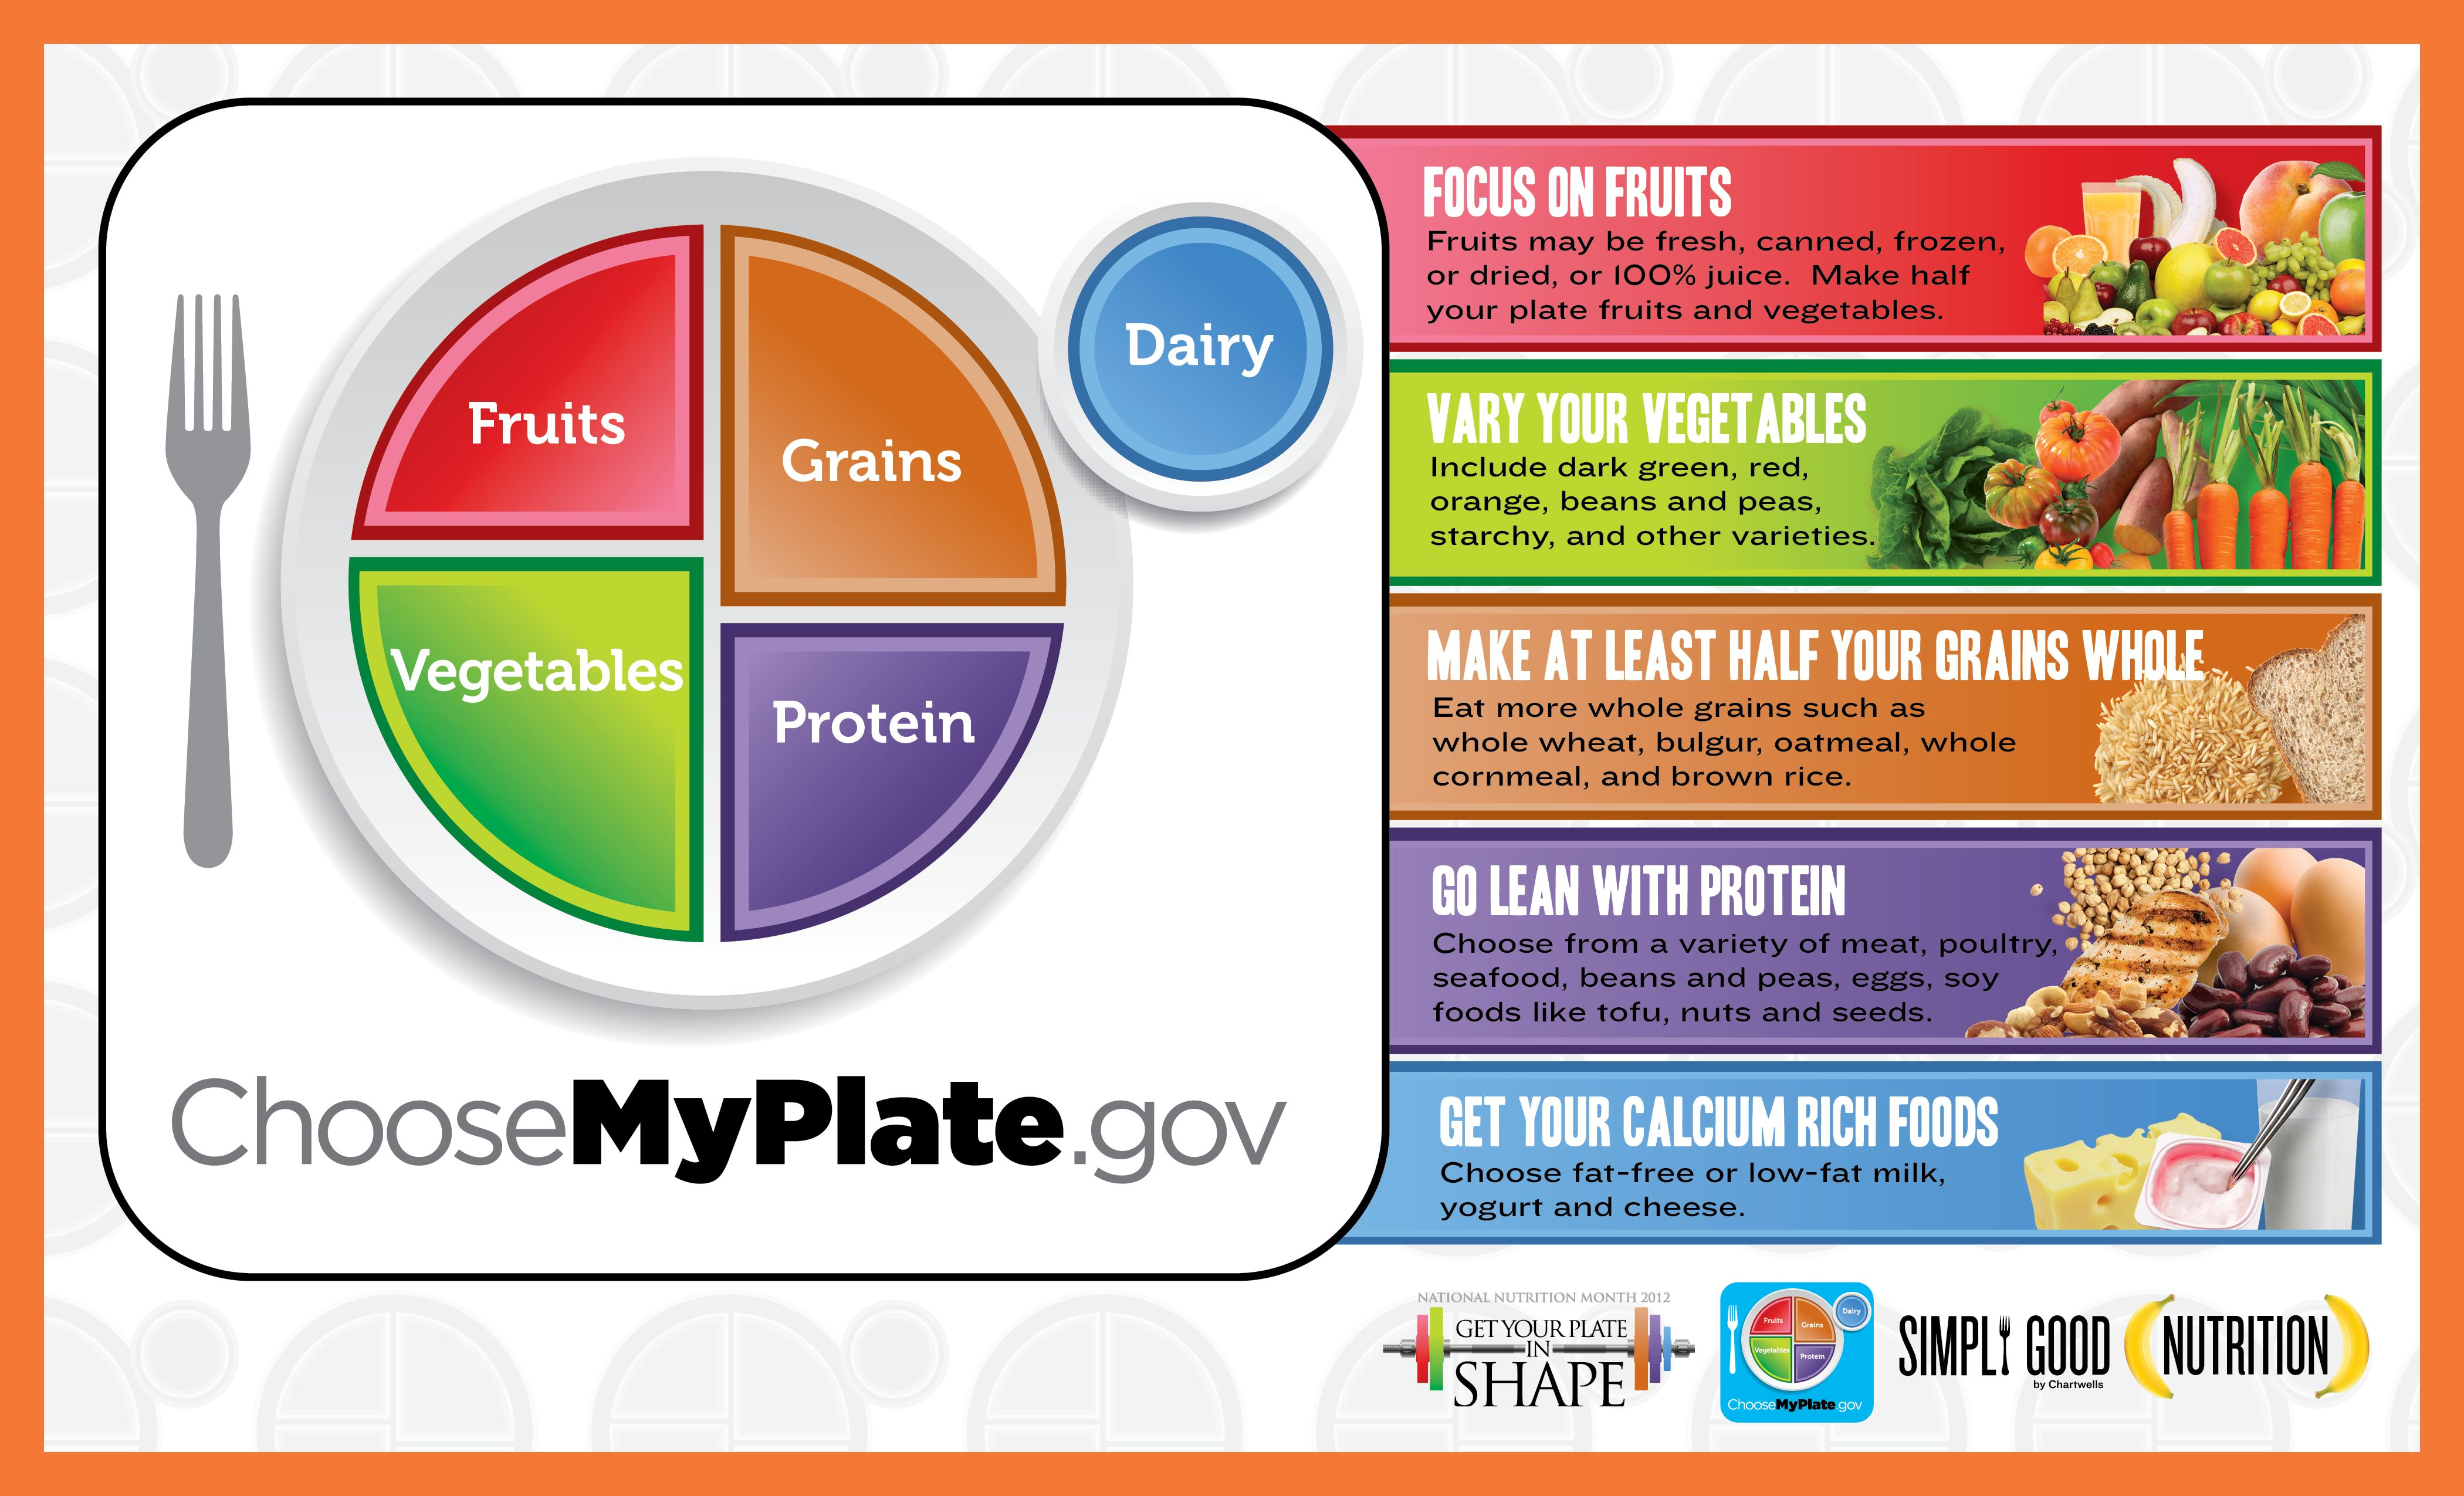 Choose Myplate Food Guide Printable Nutriton Is So Important Read More At Nutrition101ani